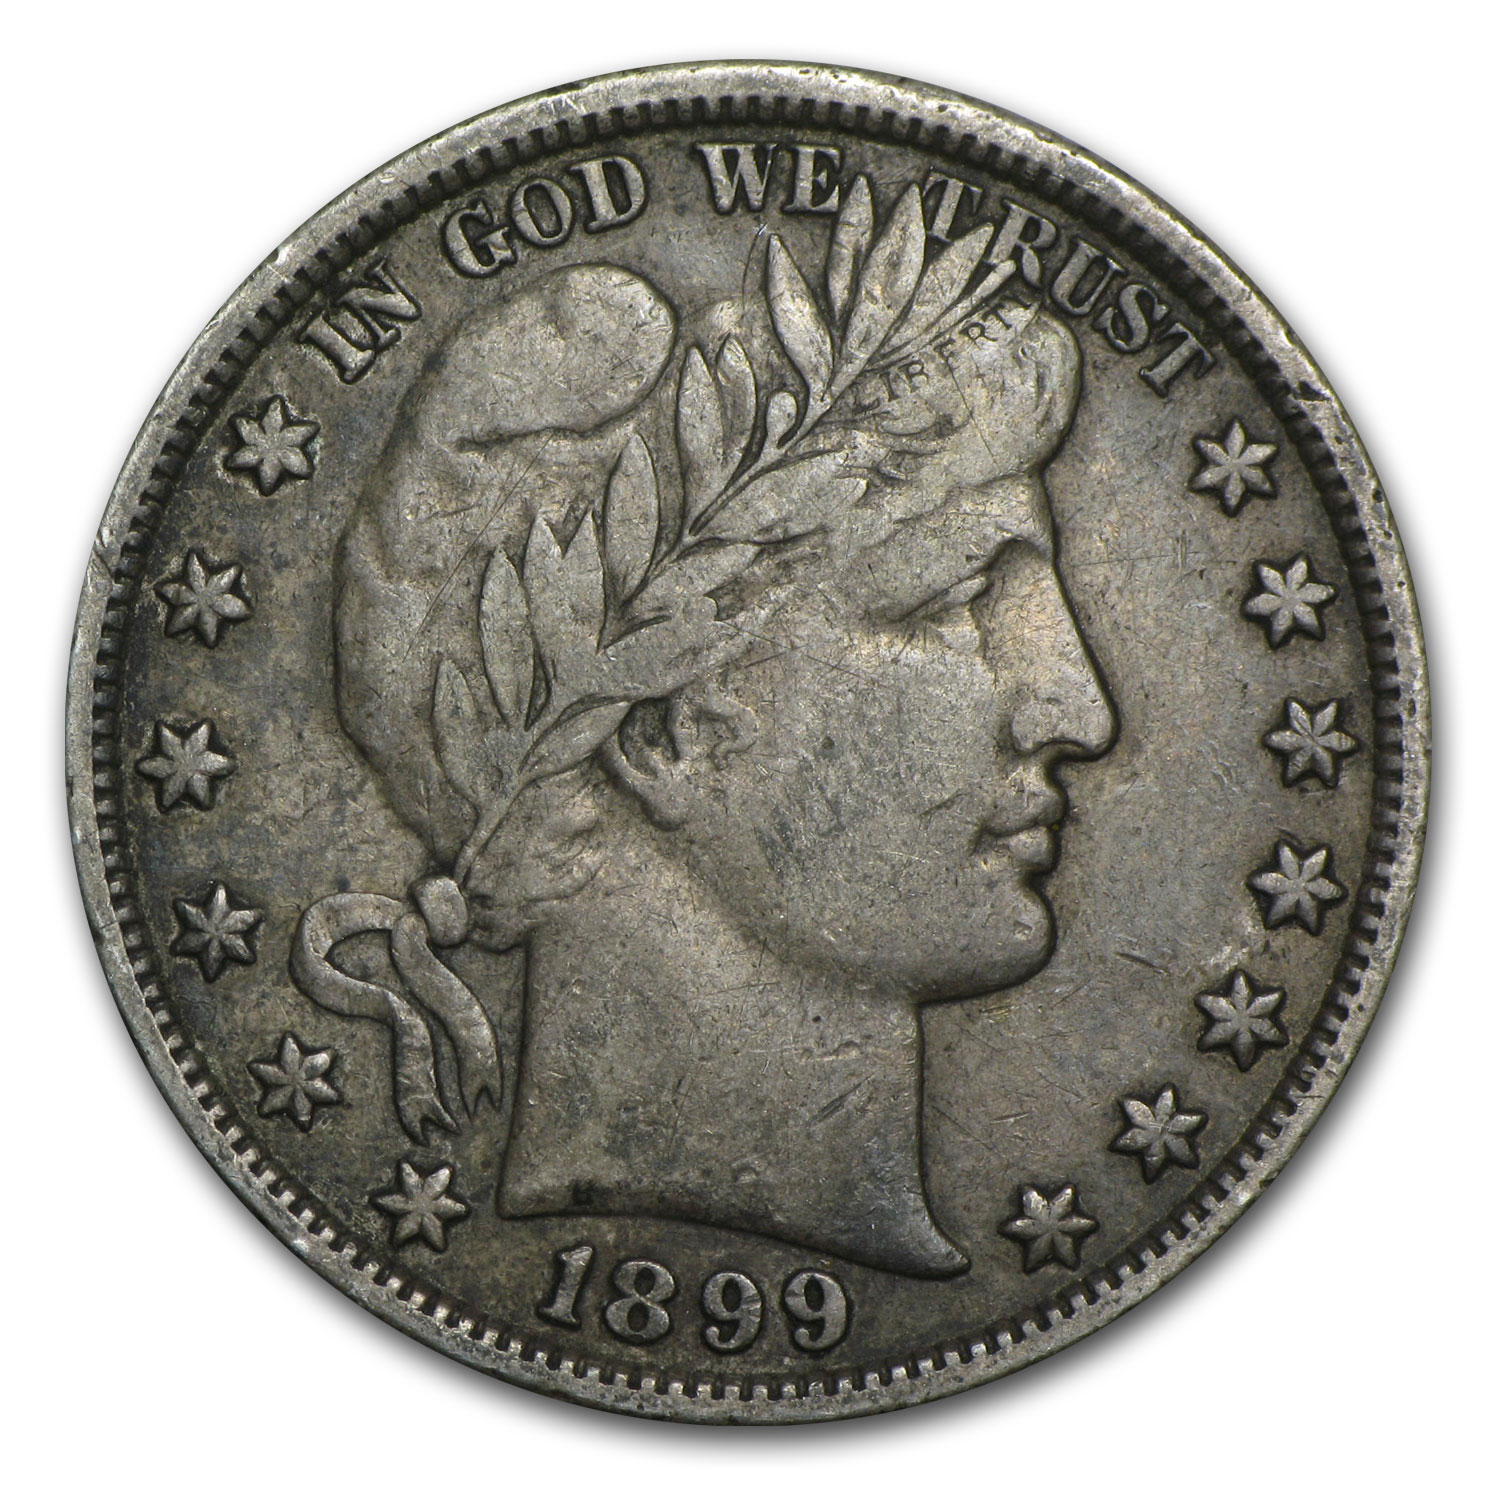 1899 Barber Half Dollar - Very Fine